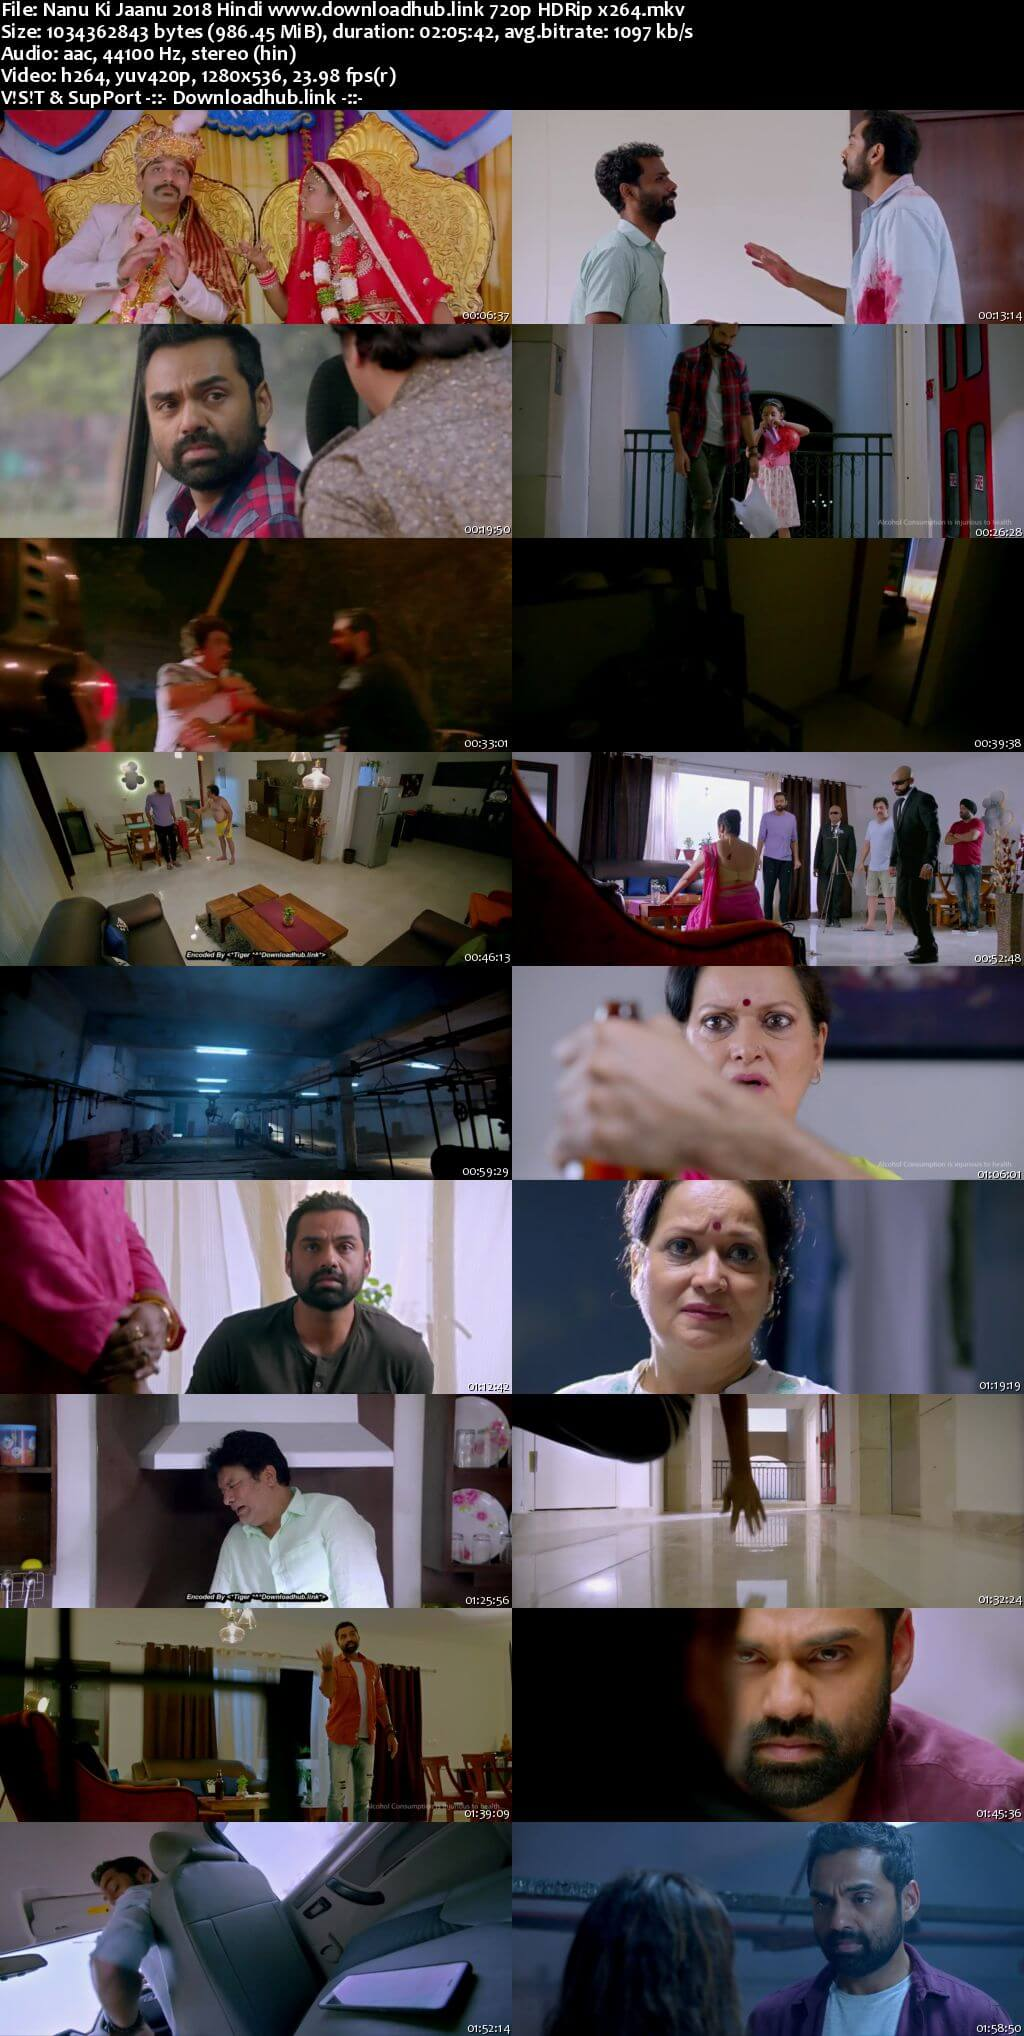 Nanu Ki Jaanu 2018 Hindi 720p HDRip x264